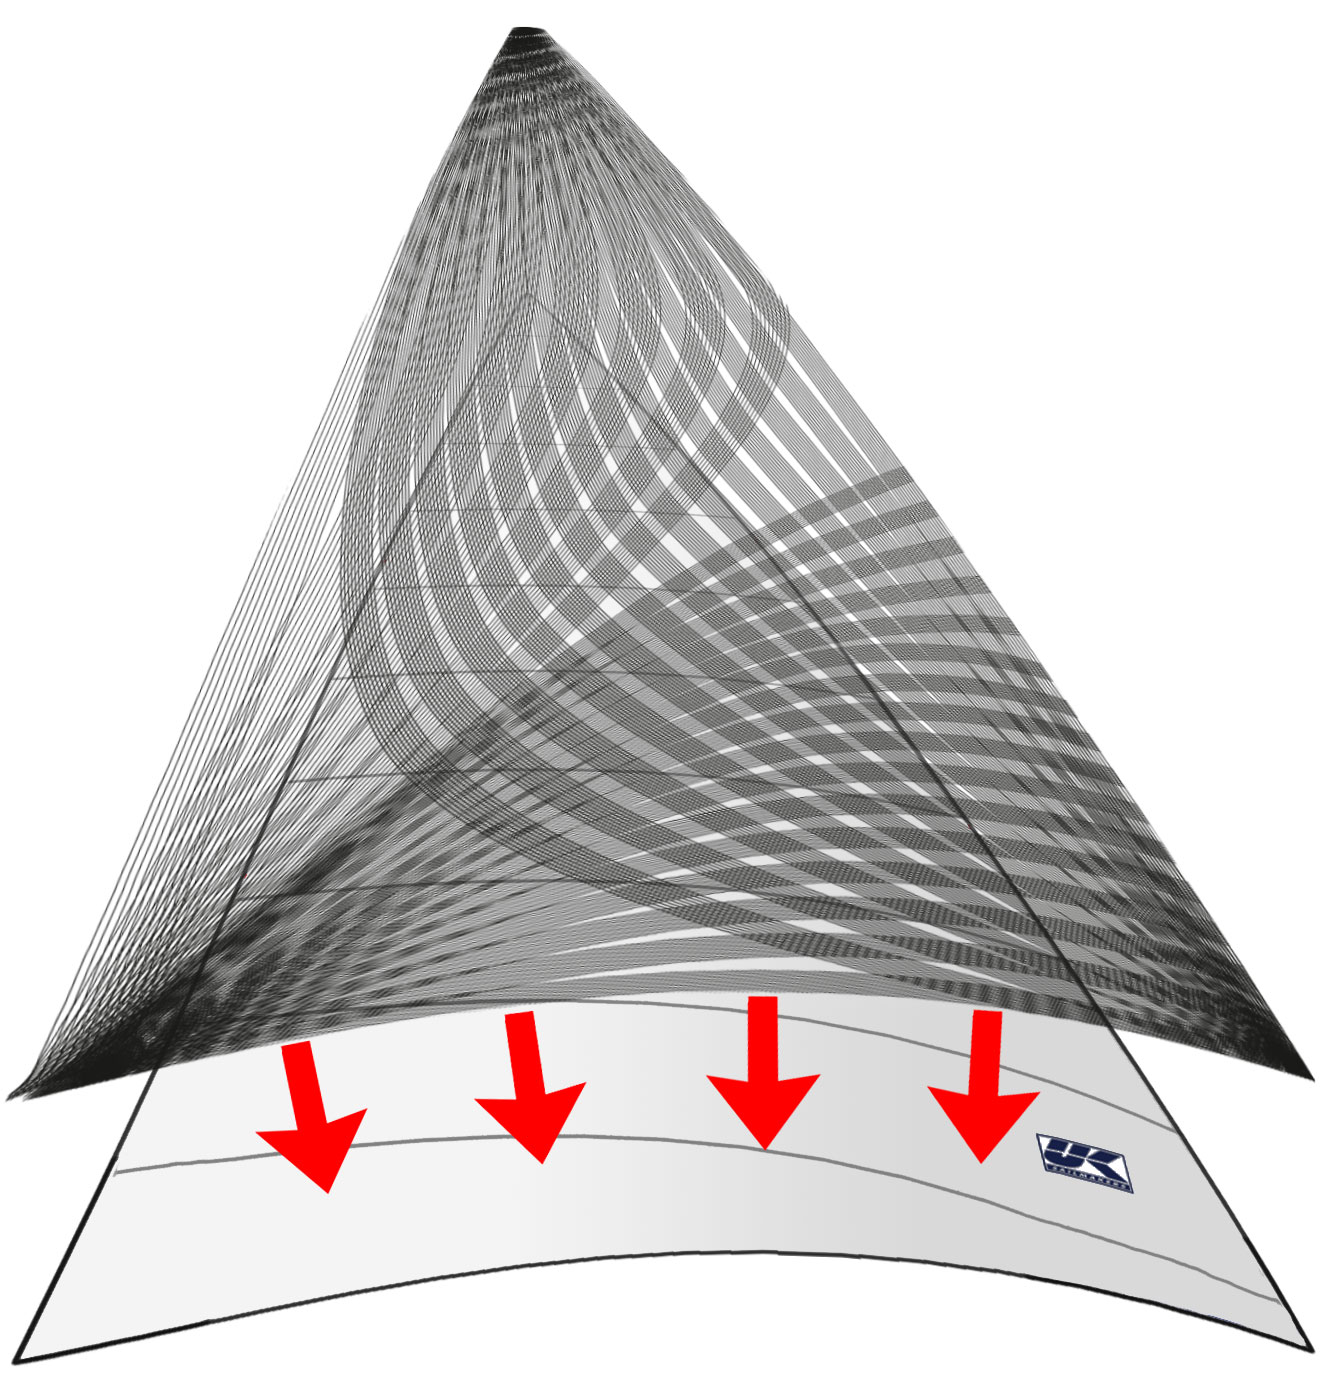 X-Drive is a two-part construction method. As the diagram shows, the sail is made from a light weight material cut into cross cut panels that when put together with broad seaming to achieve the 3-D shape created by the sail designer. Next the sail is reinforced with a grid of narrow high-strength, low-stretch tapes that are bonded to the sail 11 at a time in an 8 inch (20 cm) wide path.